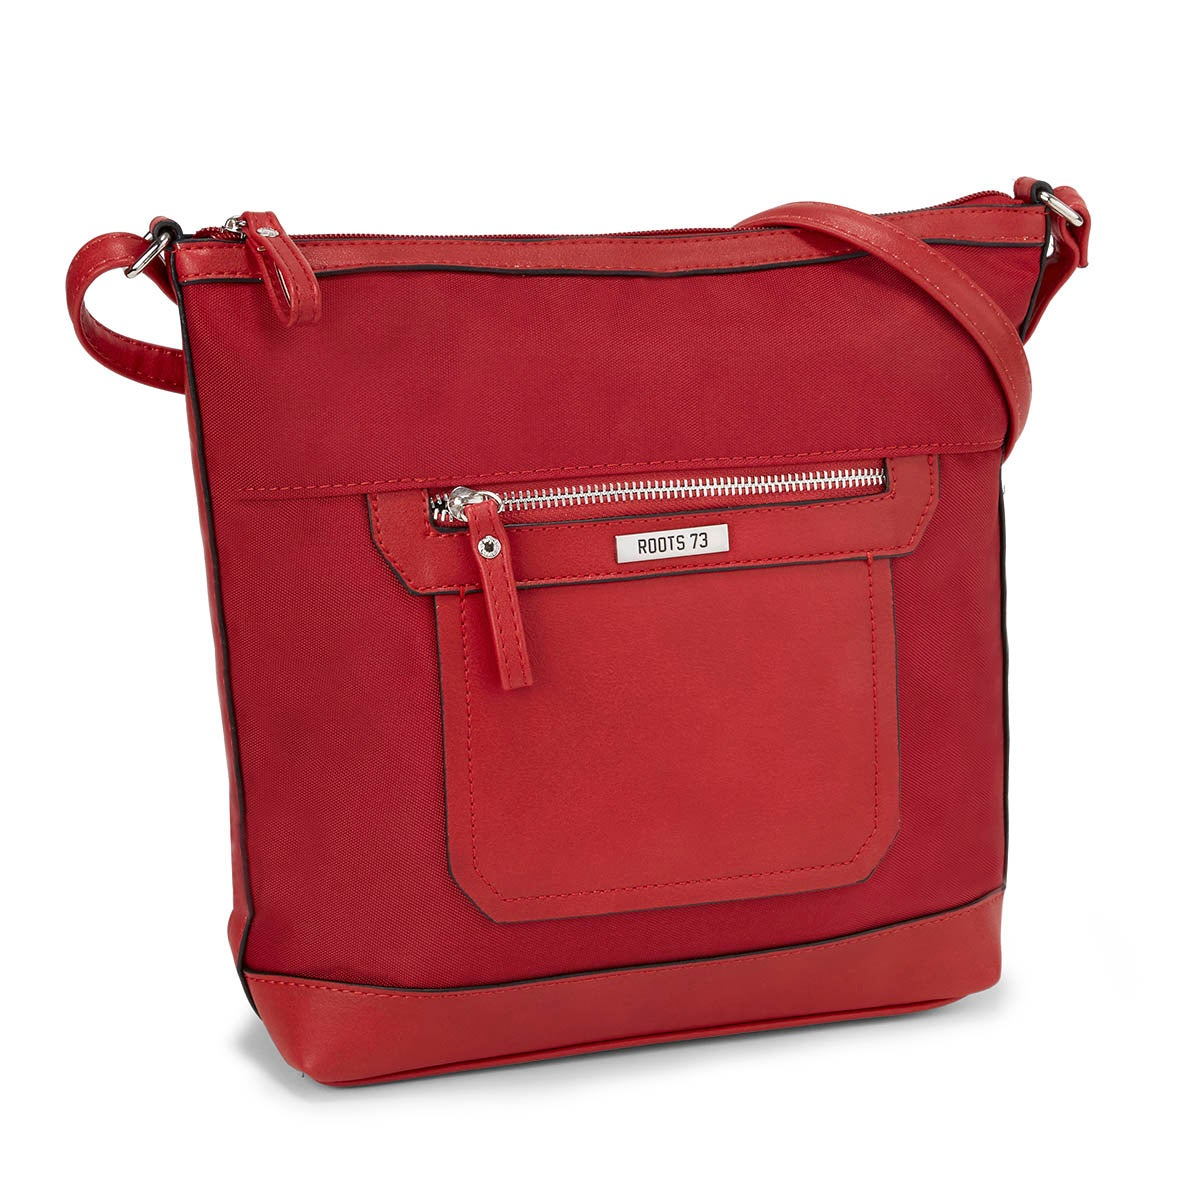 Lds Roots73 red front pocket crossbody